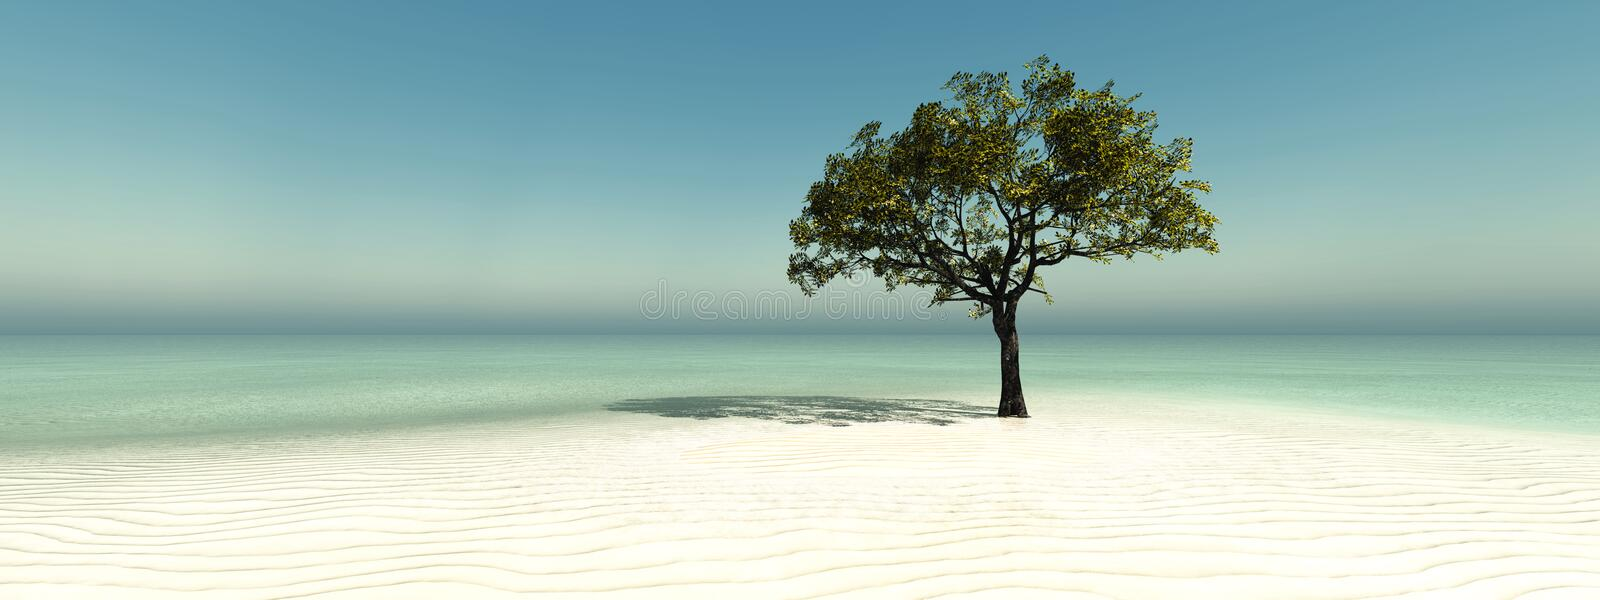 tree on the beach royalty free stock photography